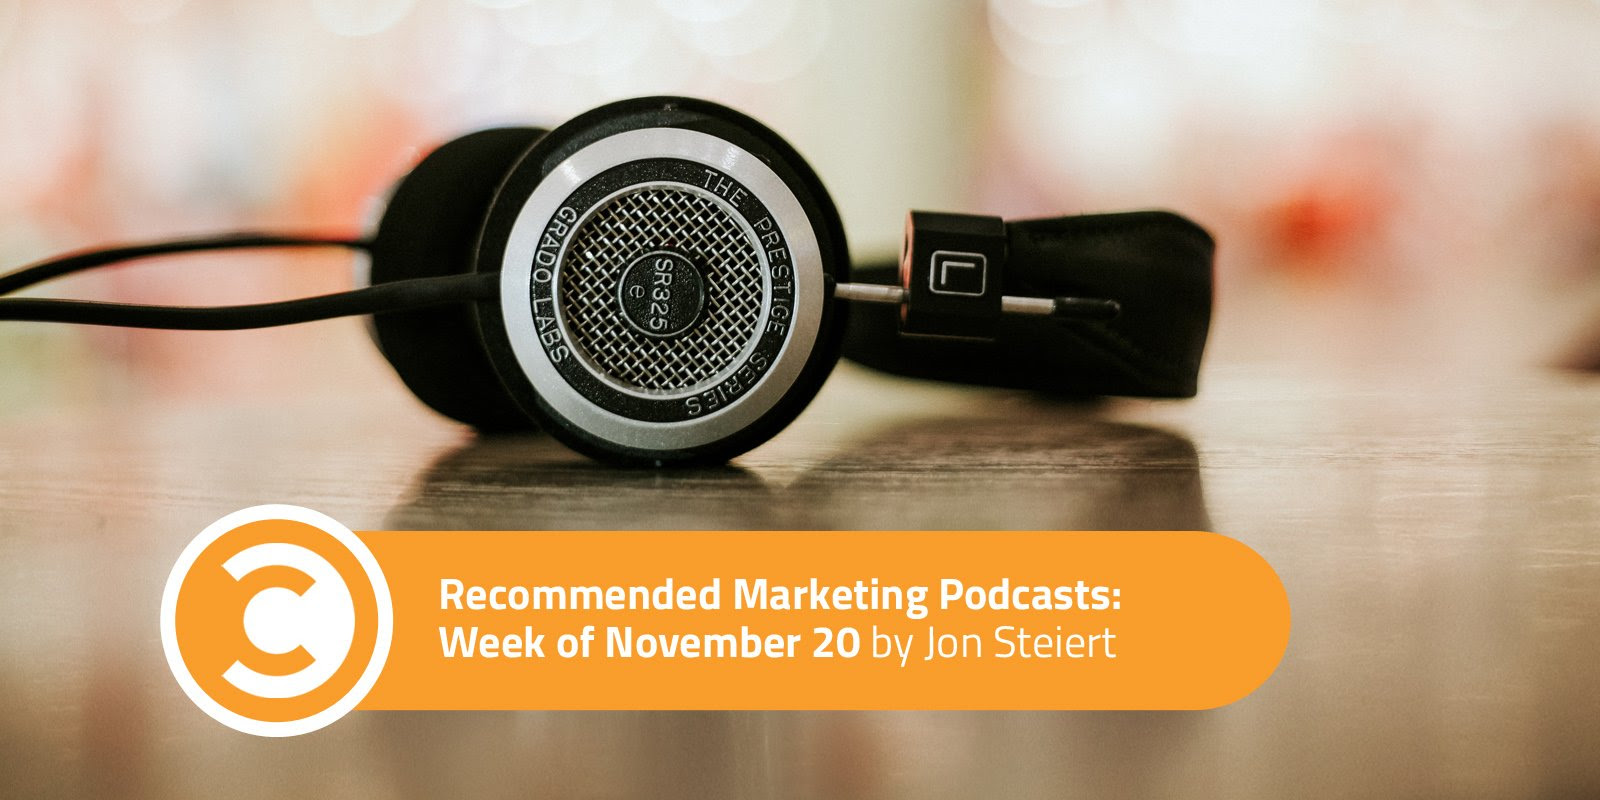 Recommended Marketing Podcasts Week of November 20